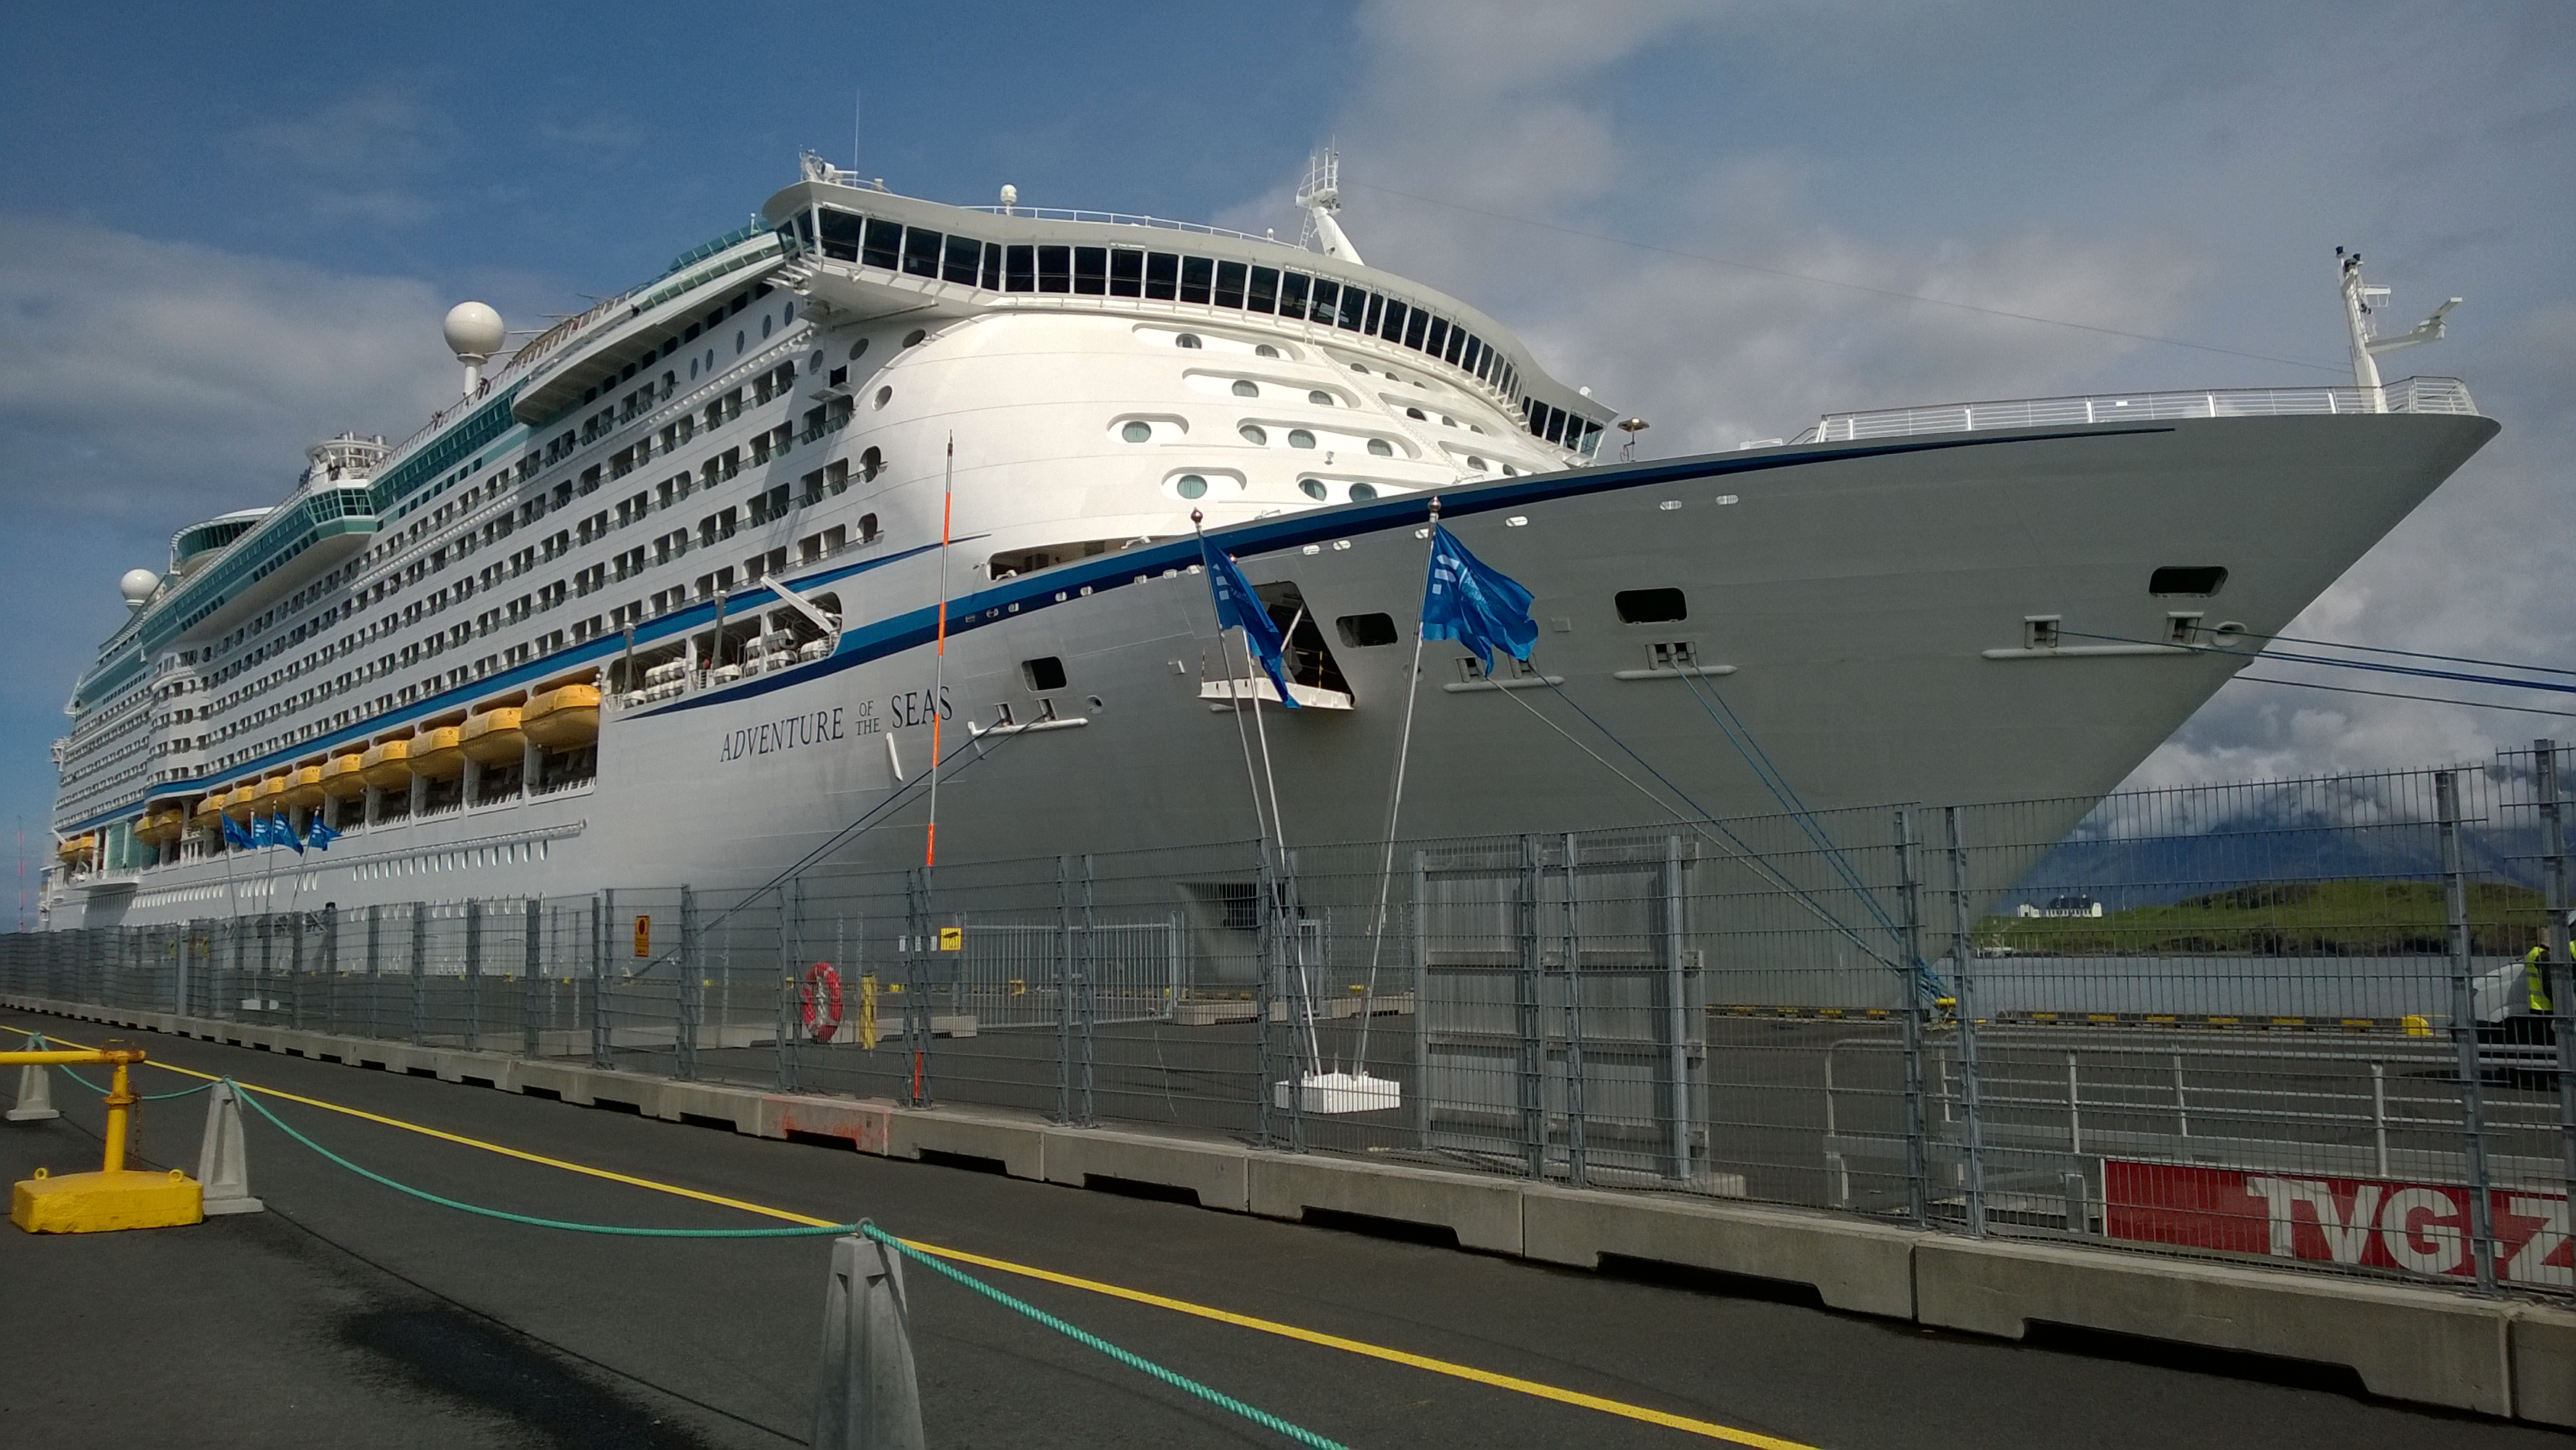 Cruise ship services in Iceland